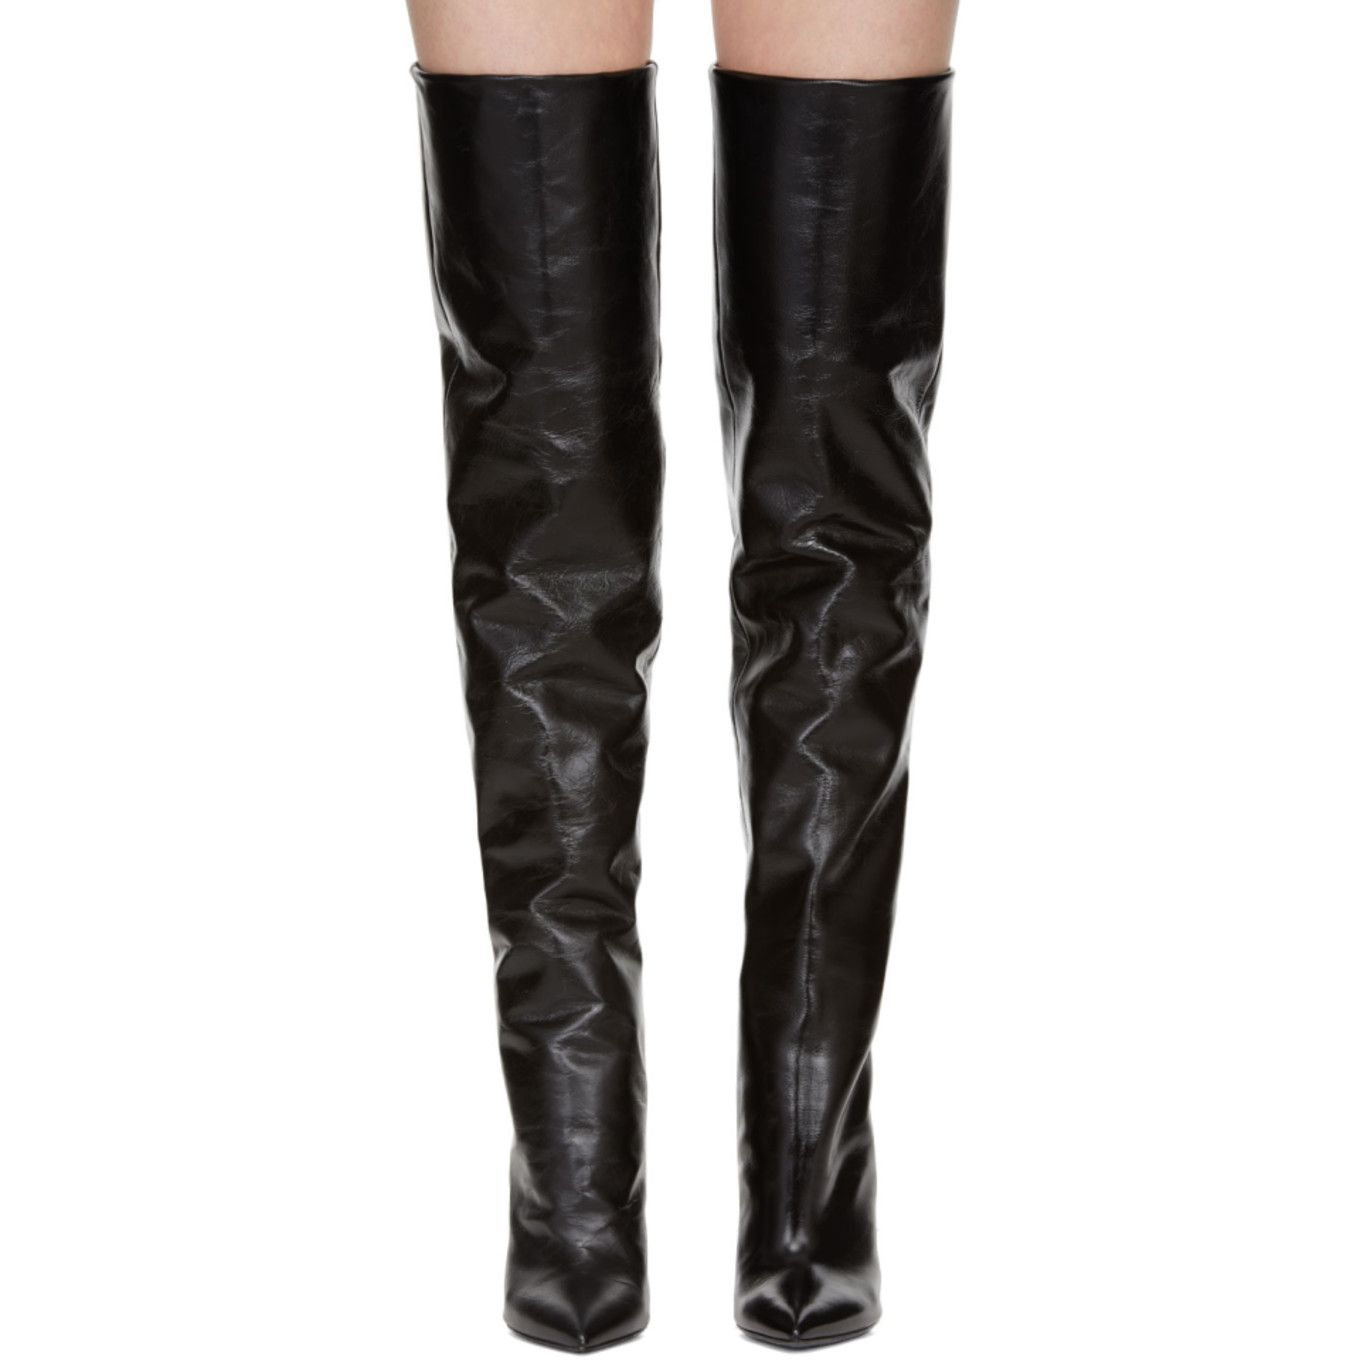 over the knee boots and leather leggings | Pantaloni di